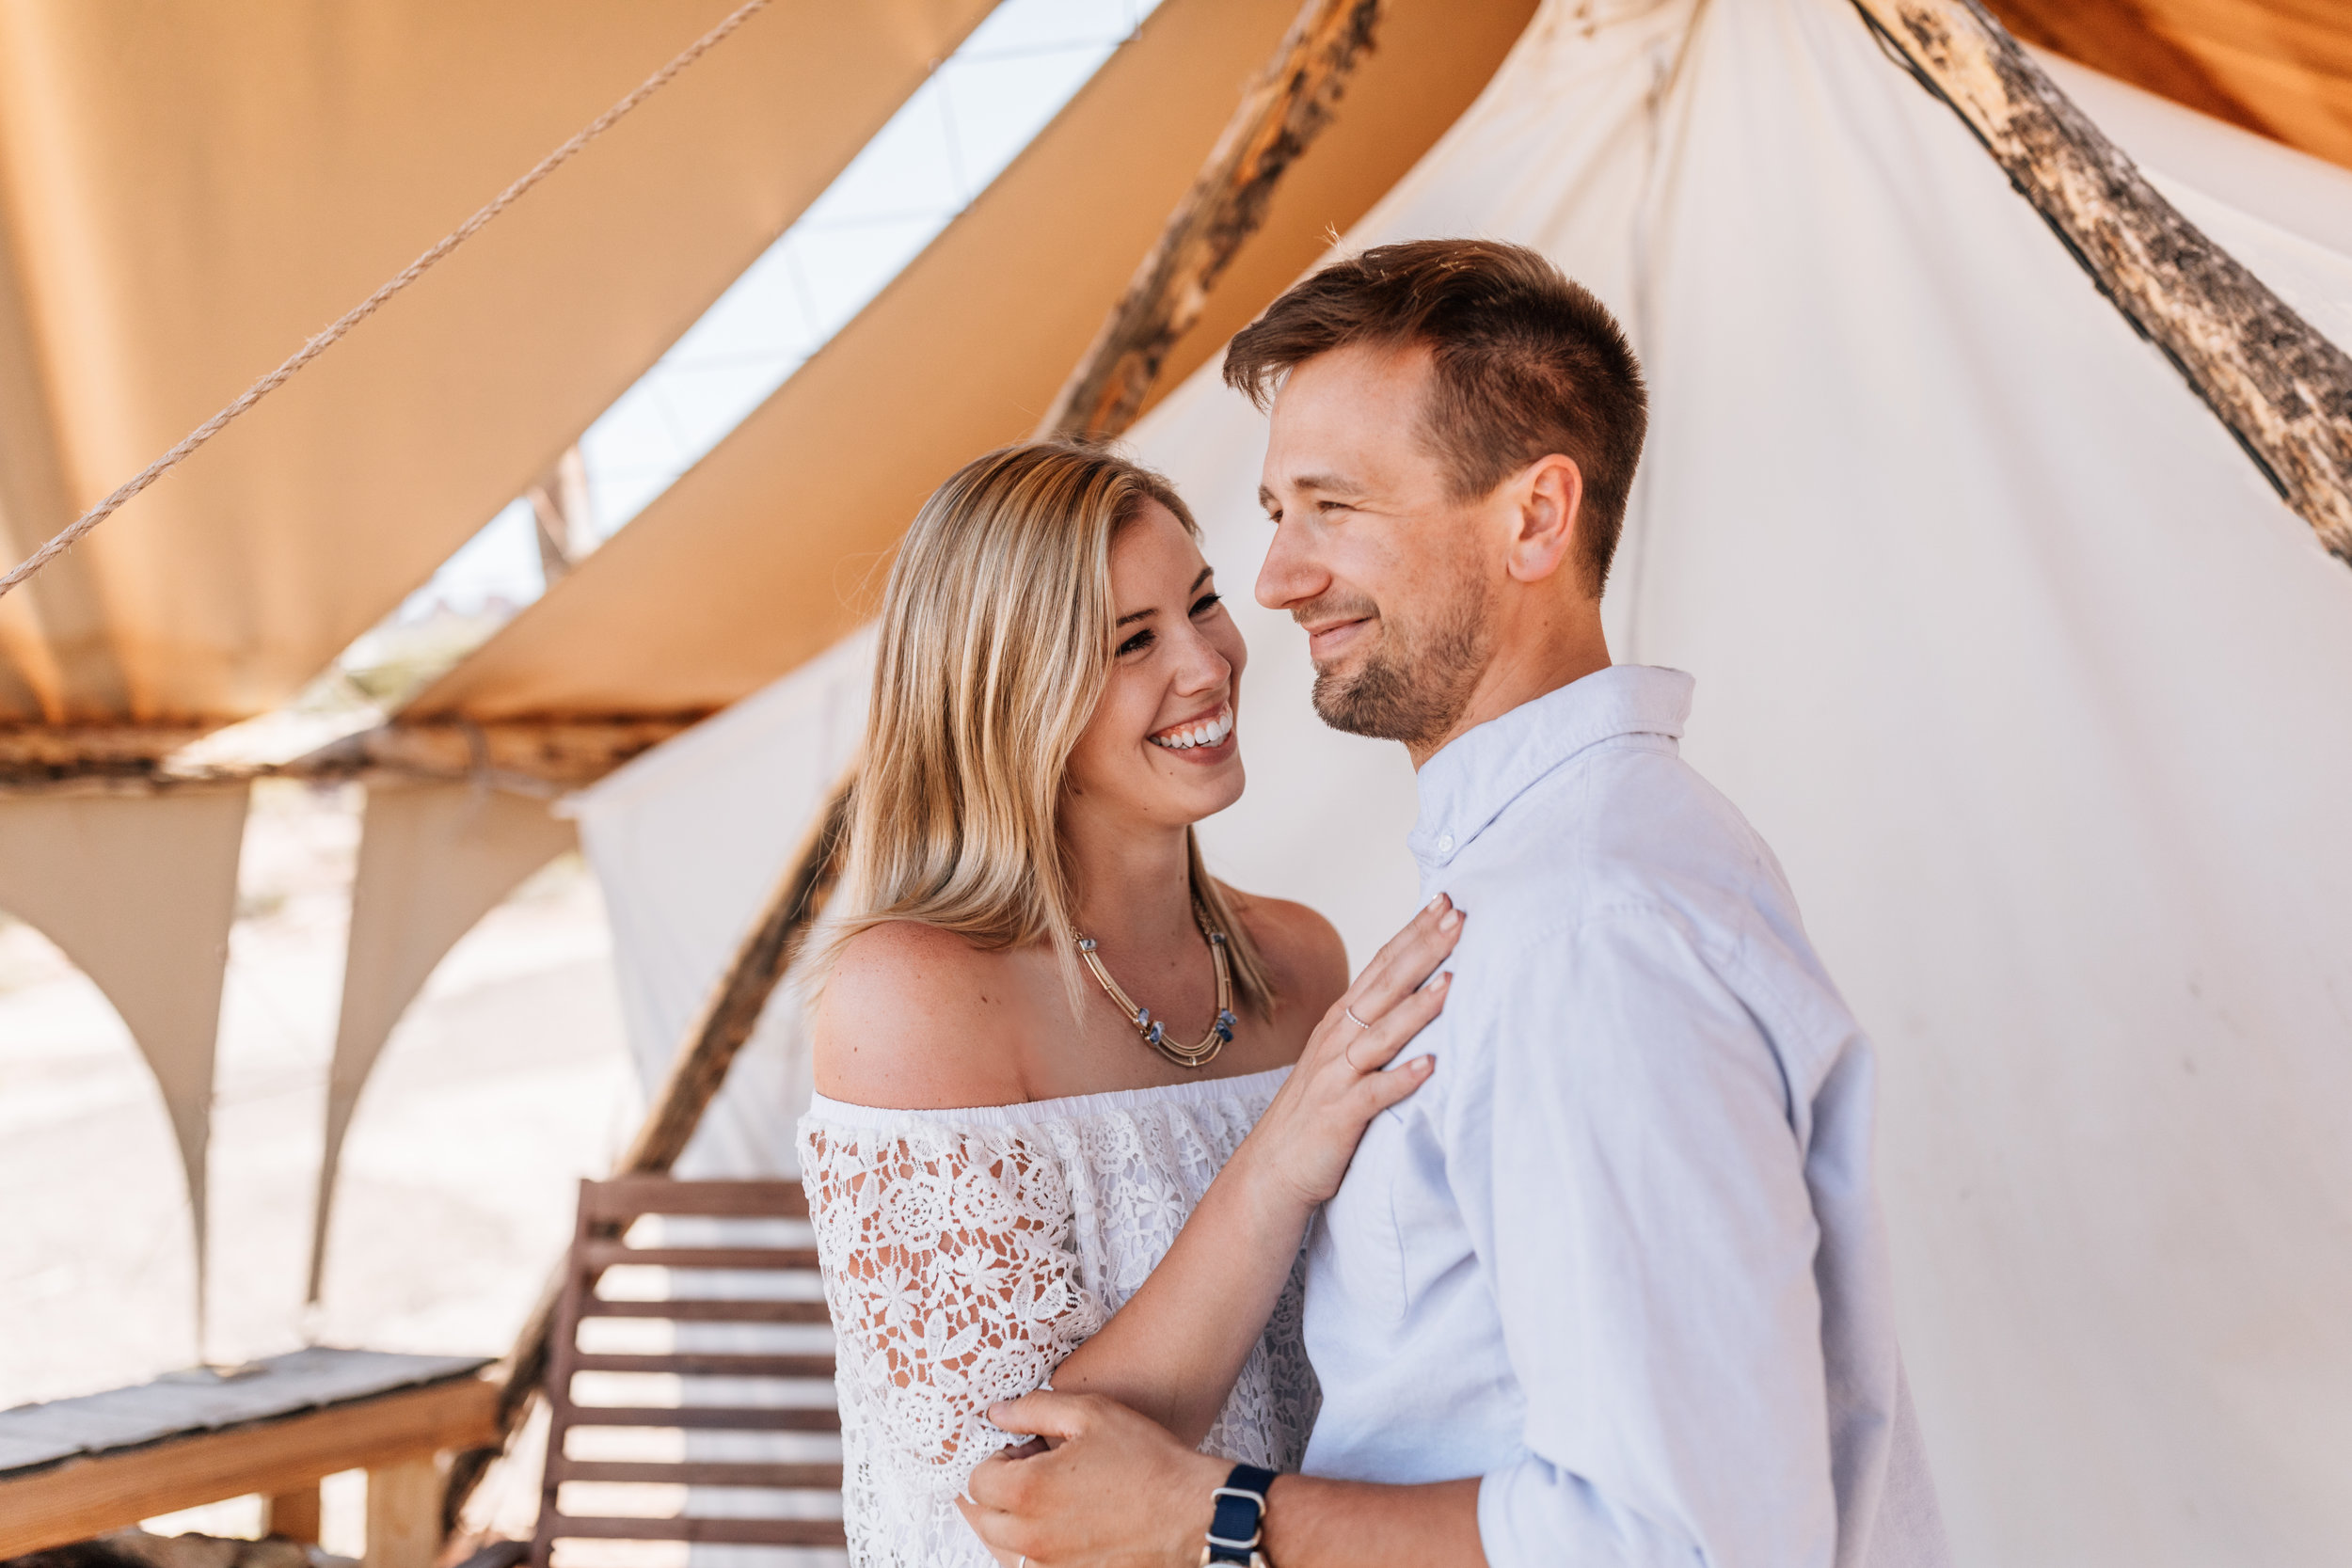 Emily + Pat Anniversary Adventurous bride, Bailey Dalton Photo, boho bride, Intimate Wedding photographer, Traveling Photographer, Utah Engagement photographer, Utah Wedding Photographer Bailey Dalton Photo 2016 - Utah Wedding Pho-30.jpg